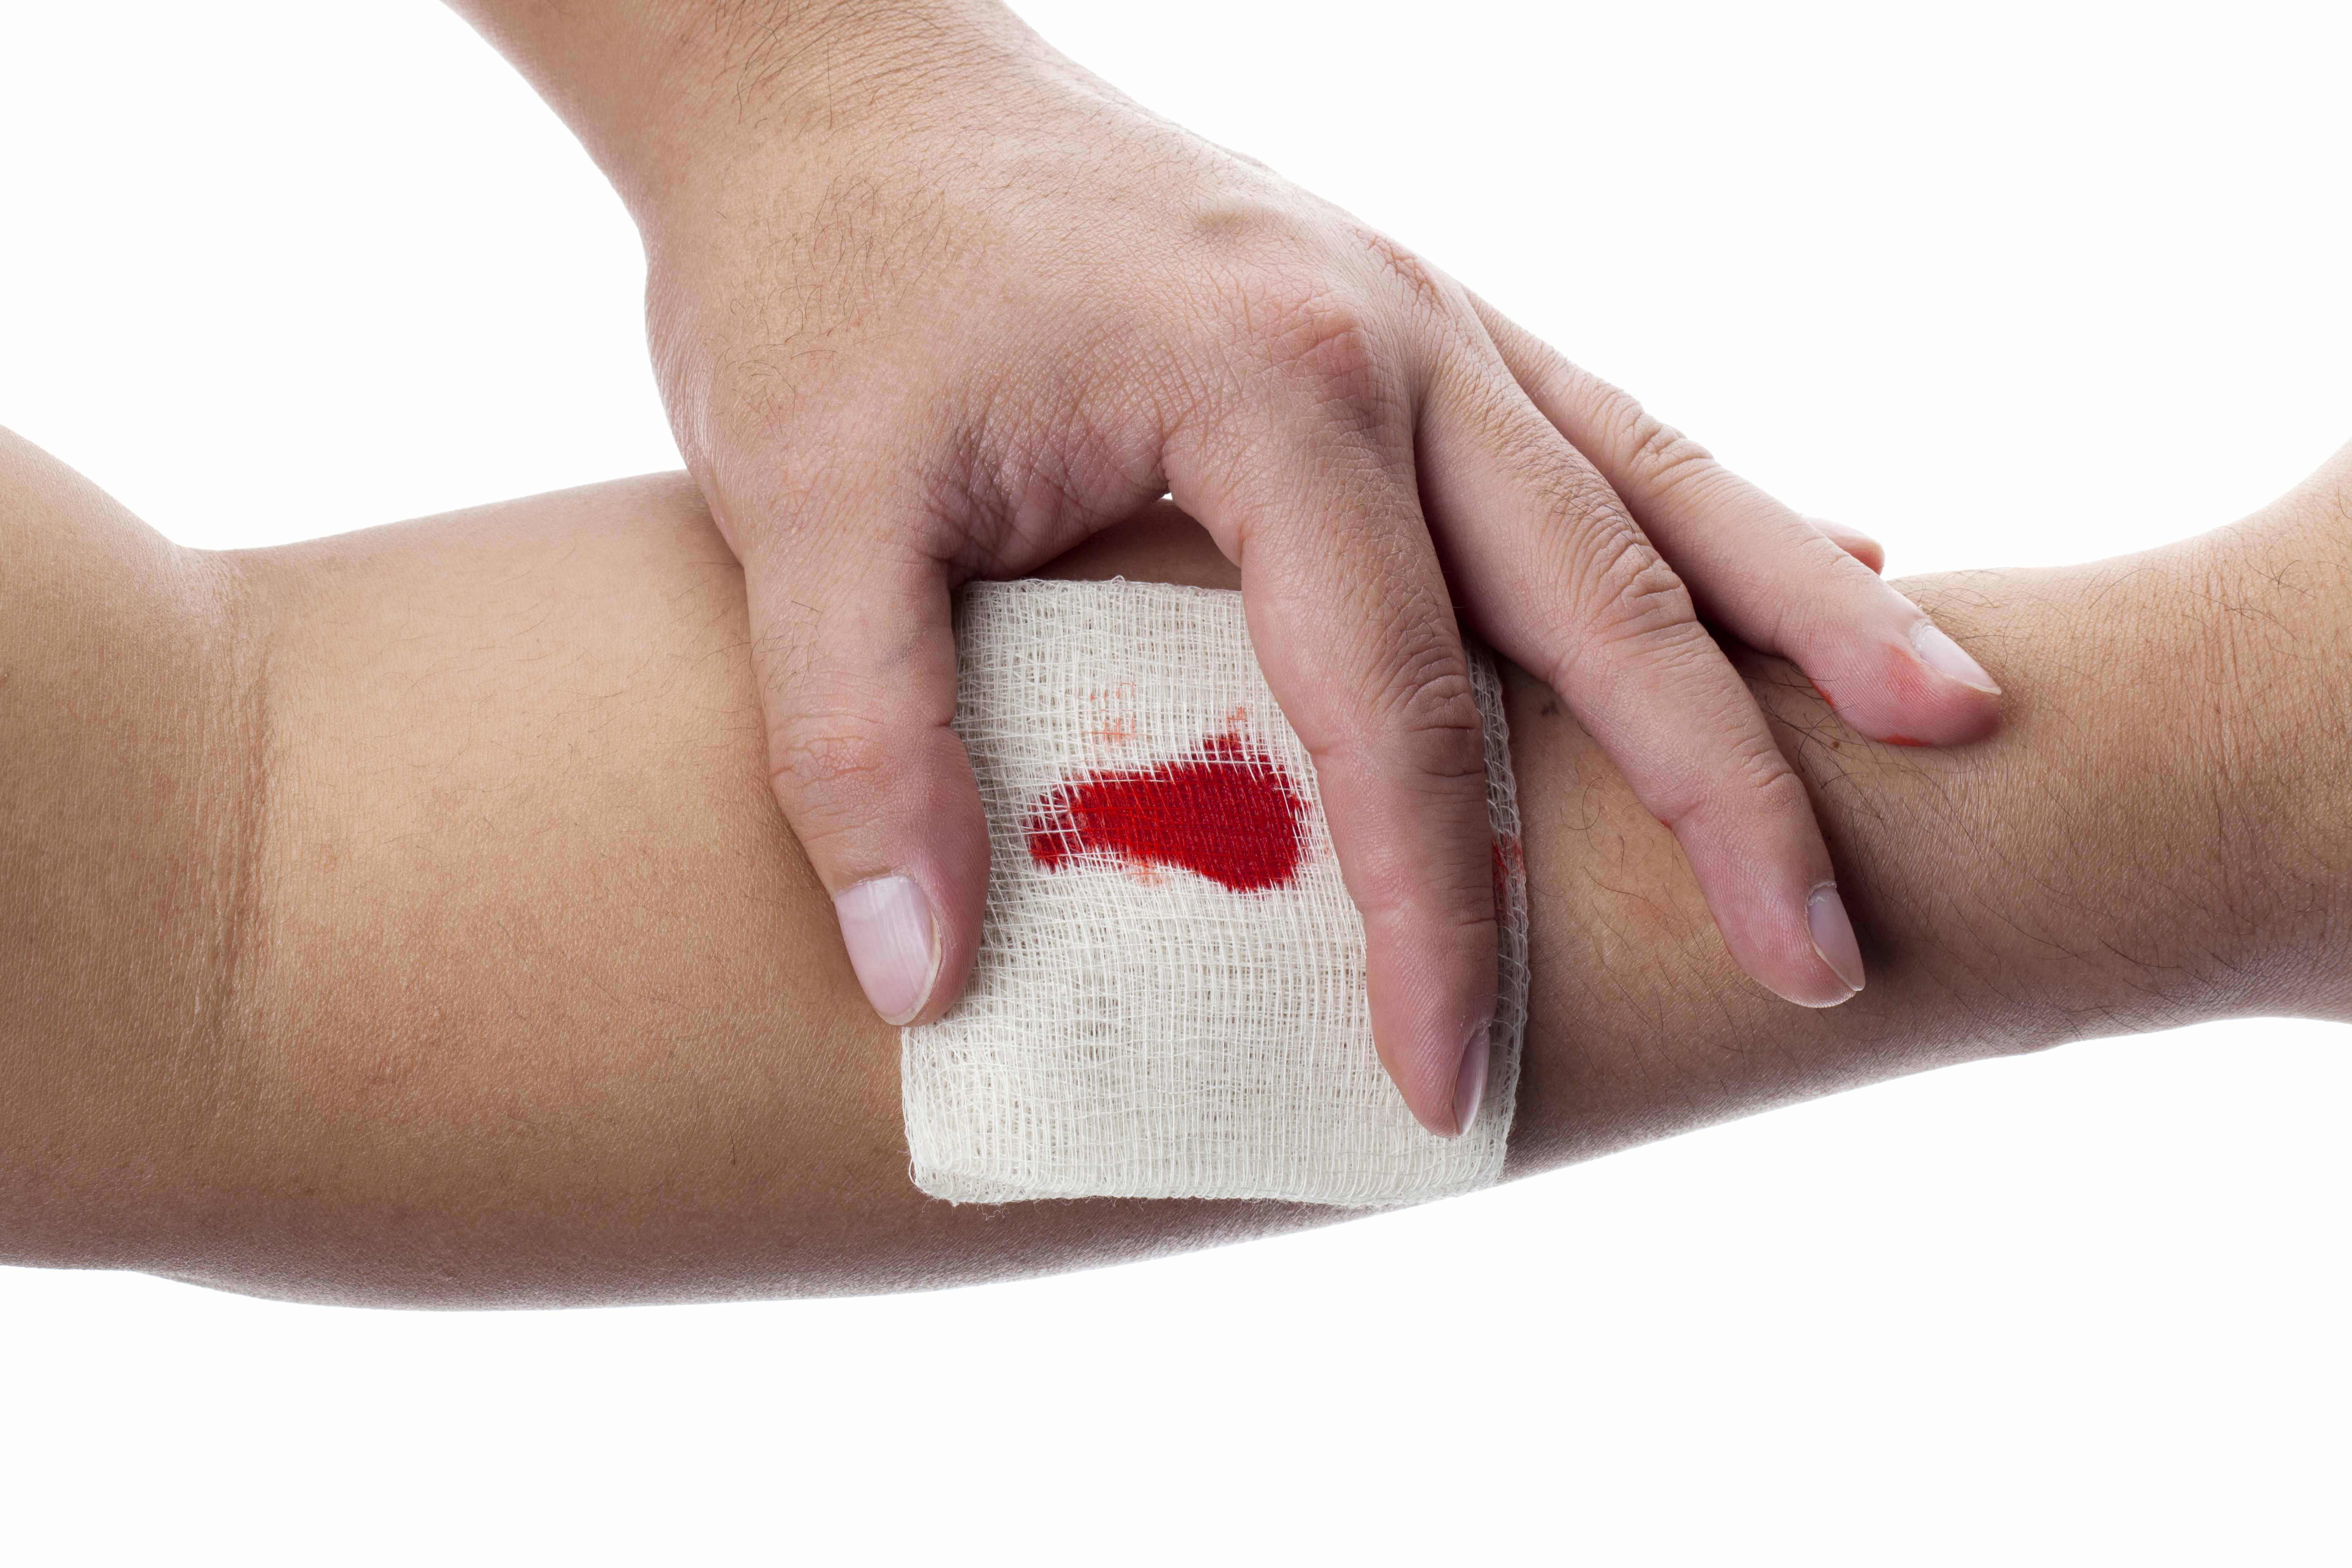 What to do with bleeding